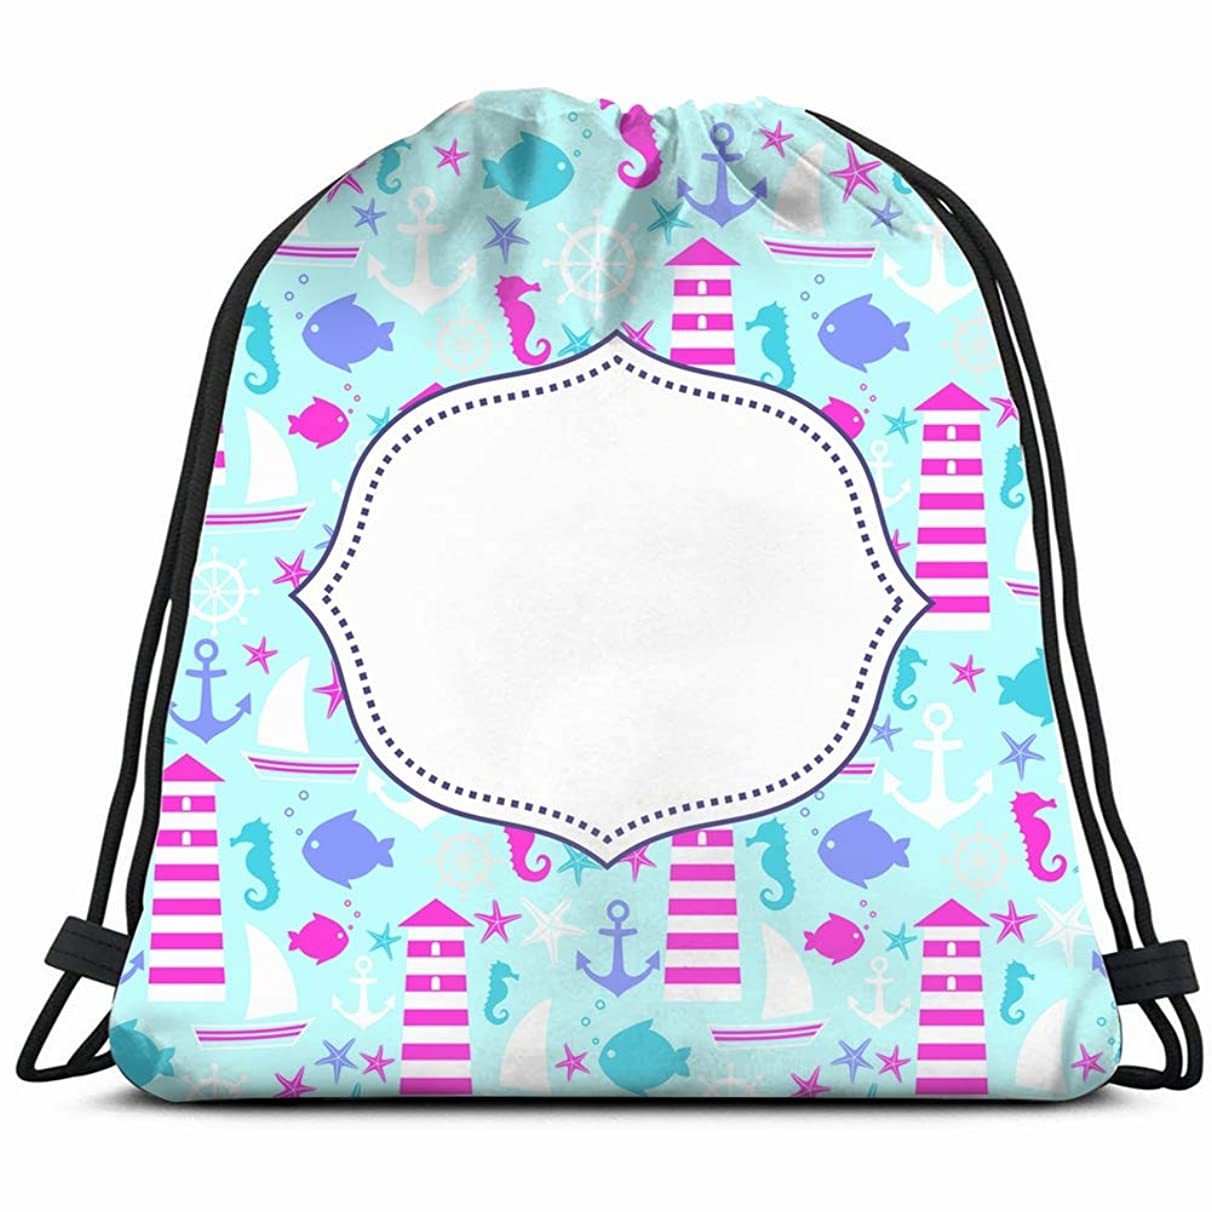 cute card navy parks outdoor Drawstring Backpack Gym Sack Lightweight Bag Water Resistant Gym Backpack for Women&Men for Sports,Travelling,Hiking,Camping,Shopping Yoga